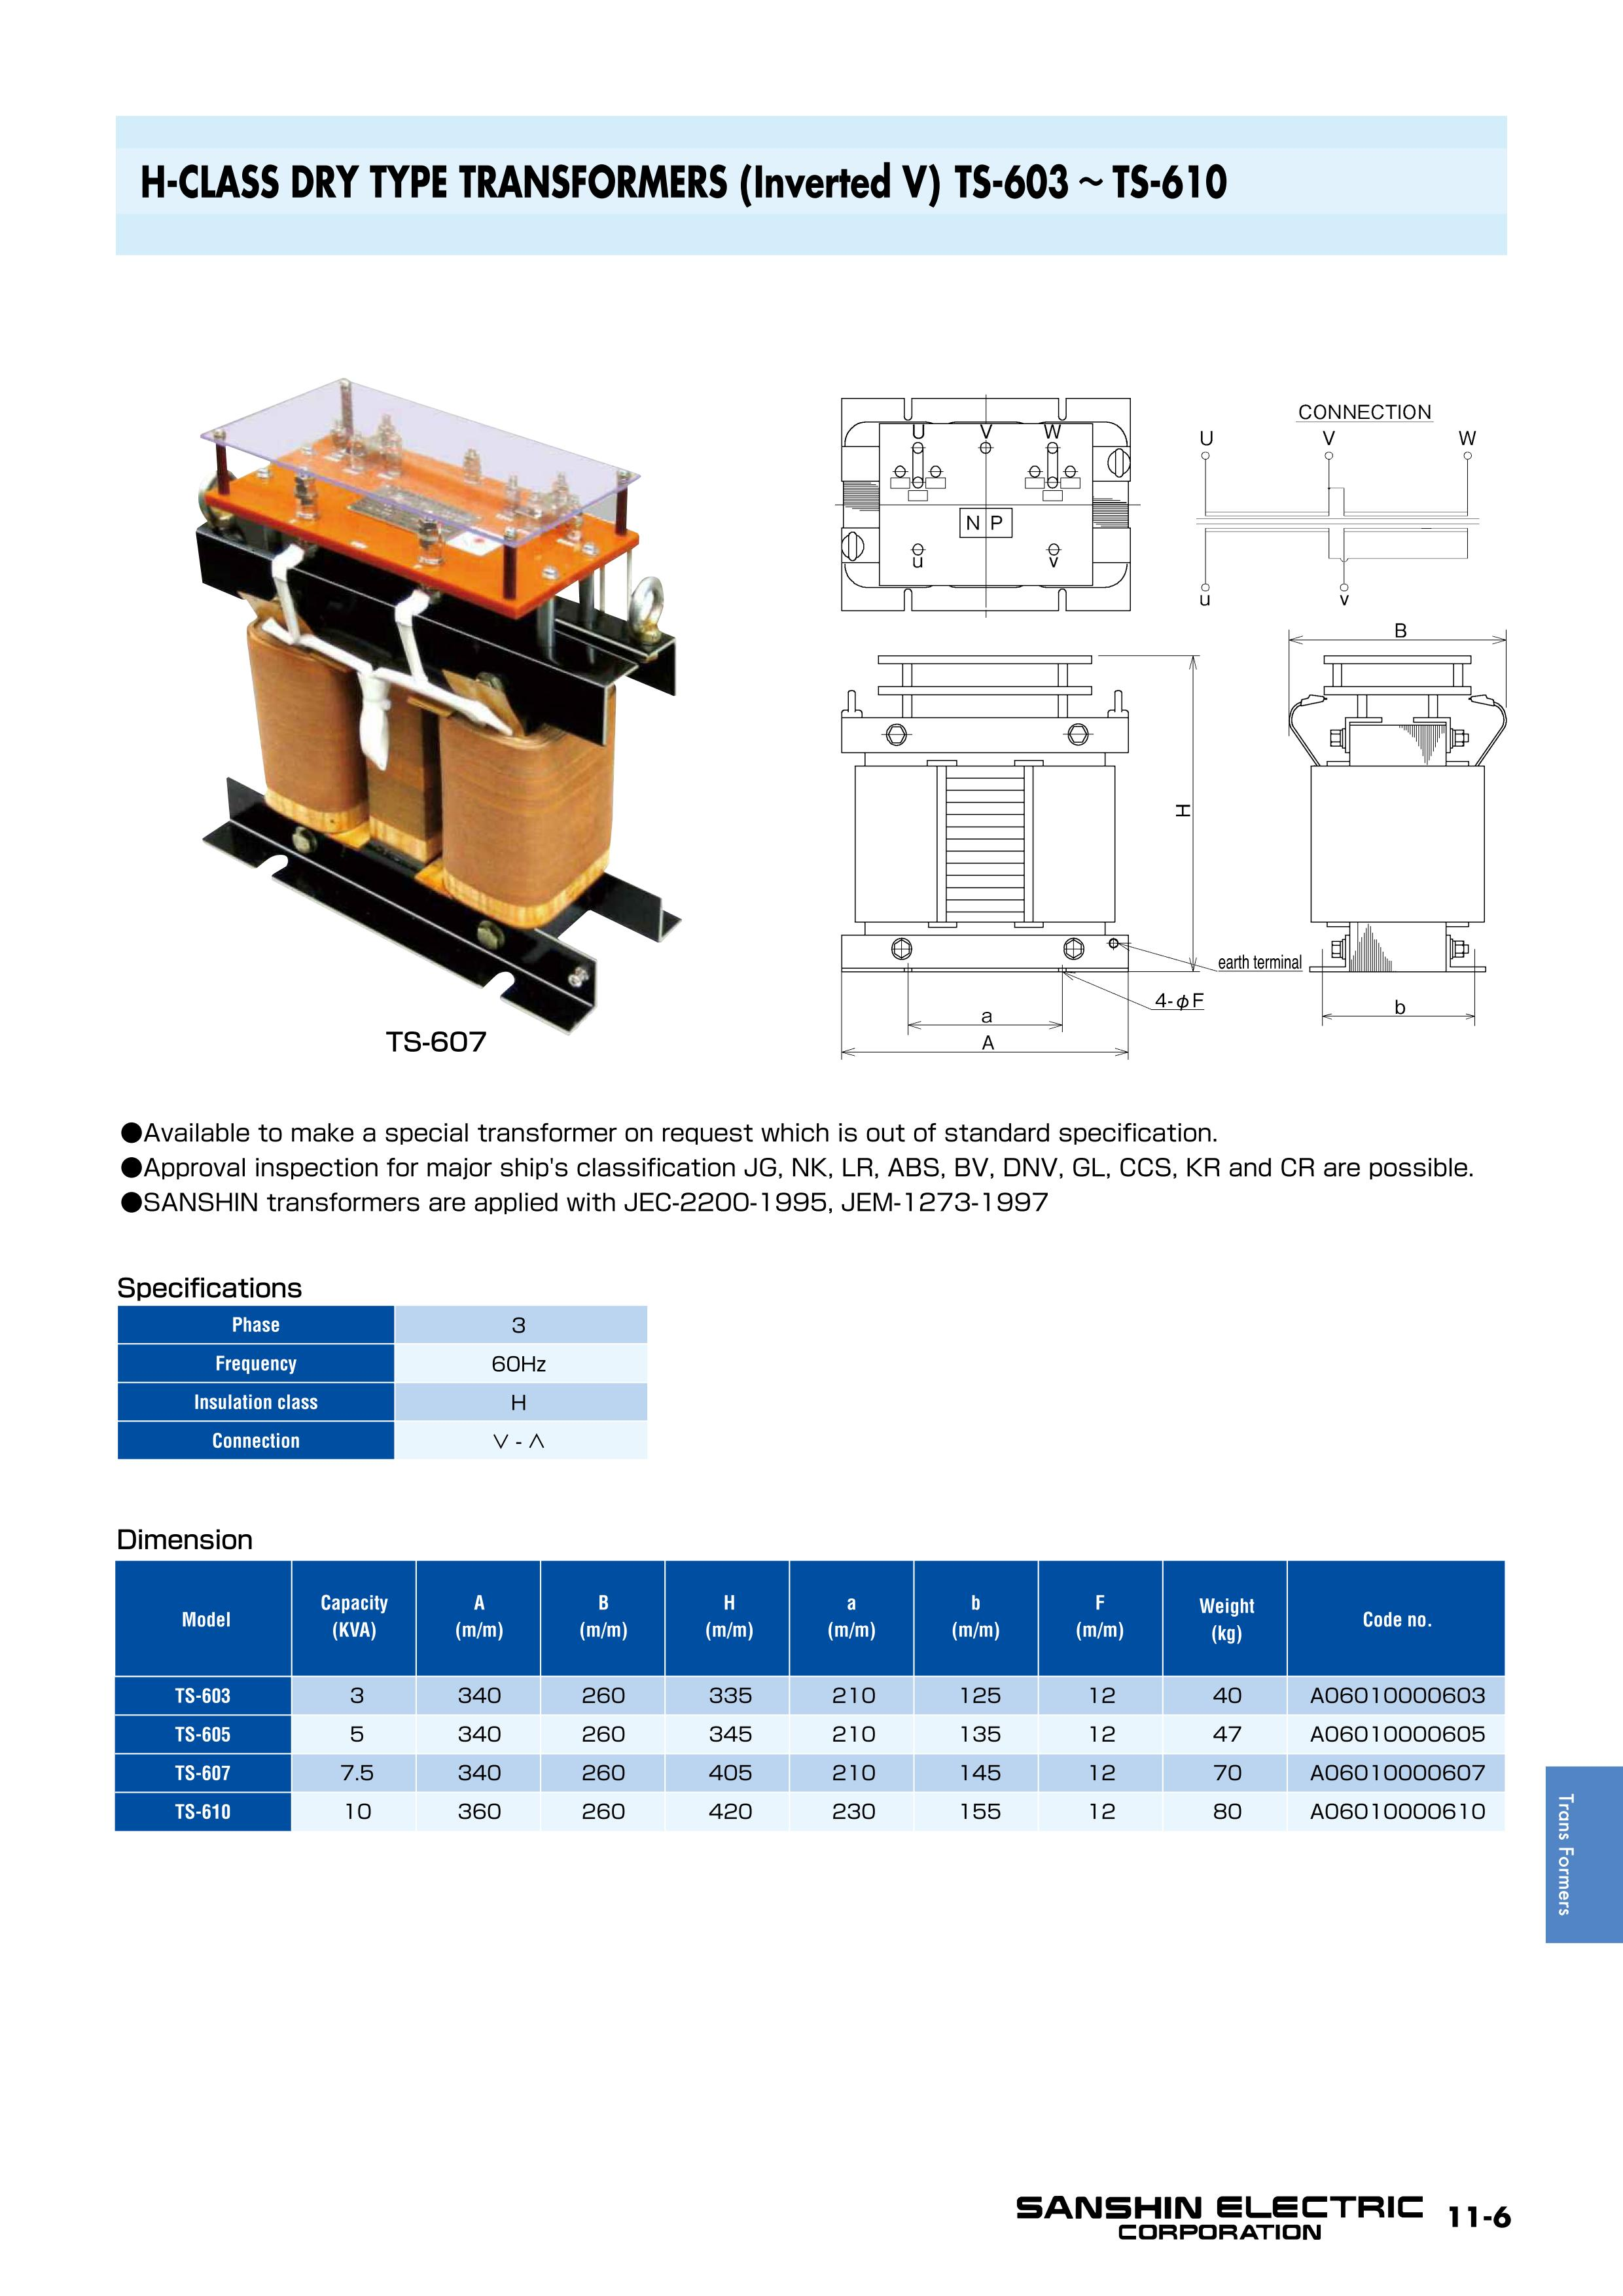 Trans Formers Product List Sanshin Electric Corporation Dry Type Transformer Wiring Diagram H Class Transformers